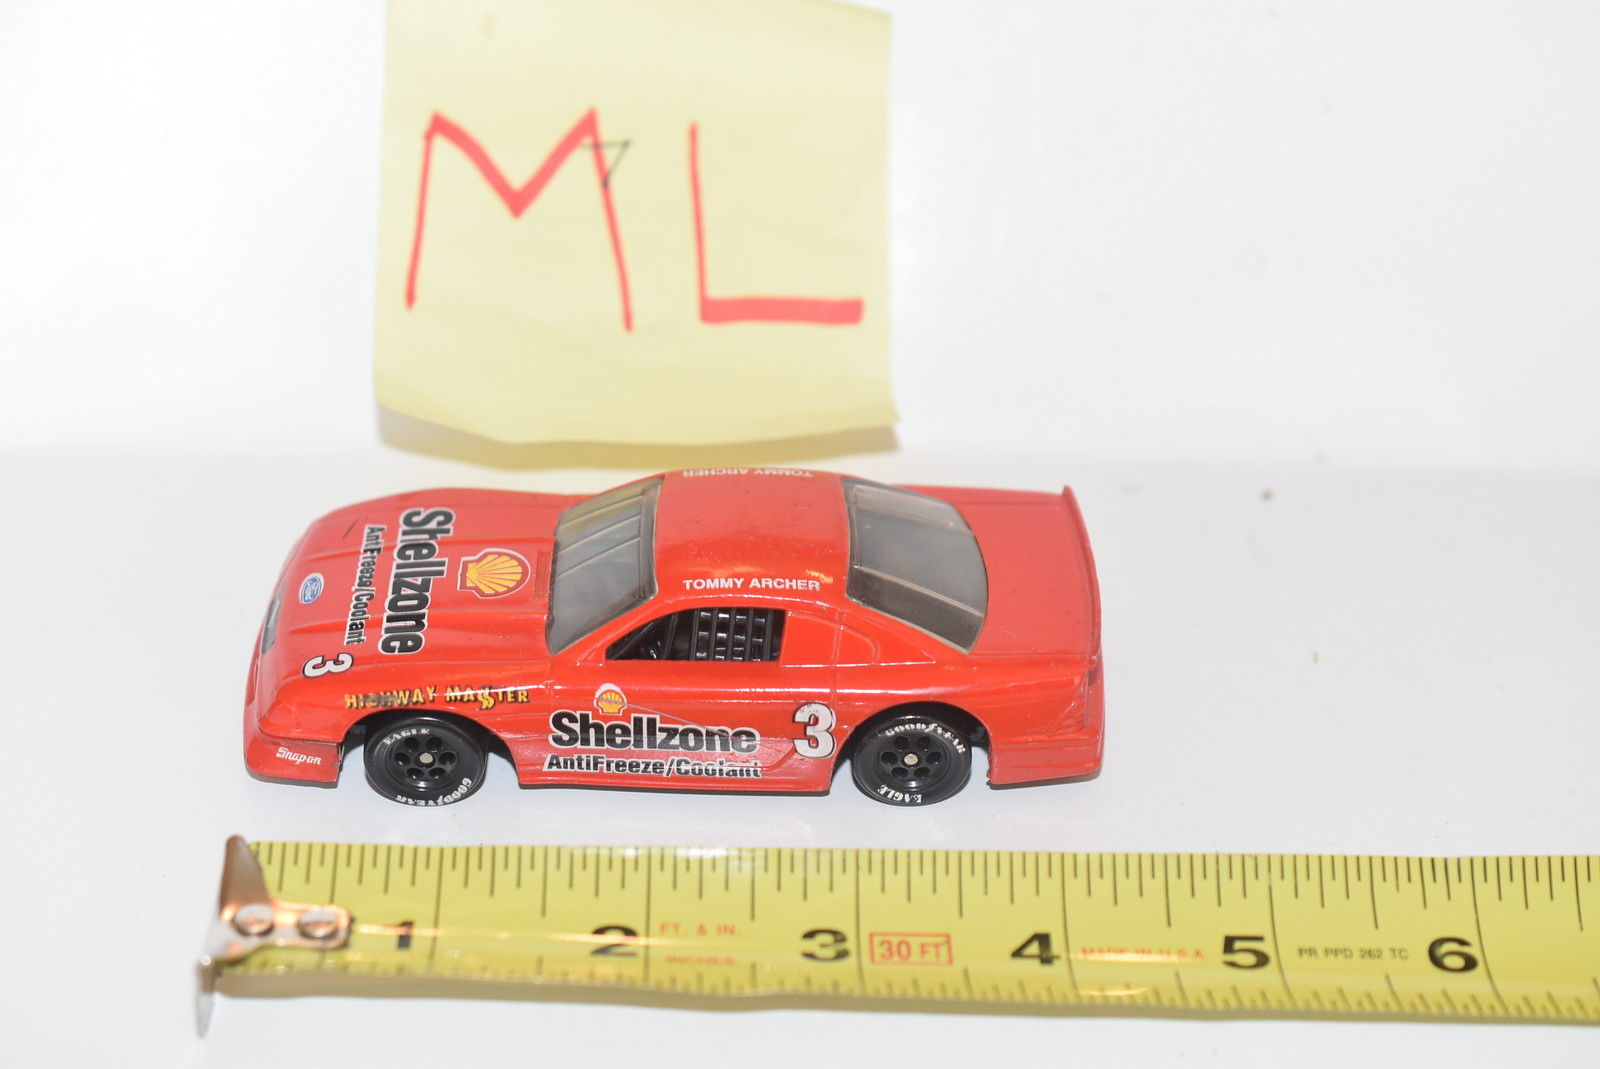 95 MUSTANG RACE CAR PROMO RED SHELLZONE - TRANSAM SERIES - TOMMY ARCHER - LOOSE